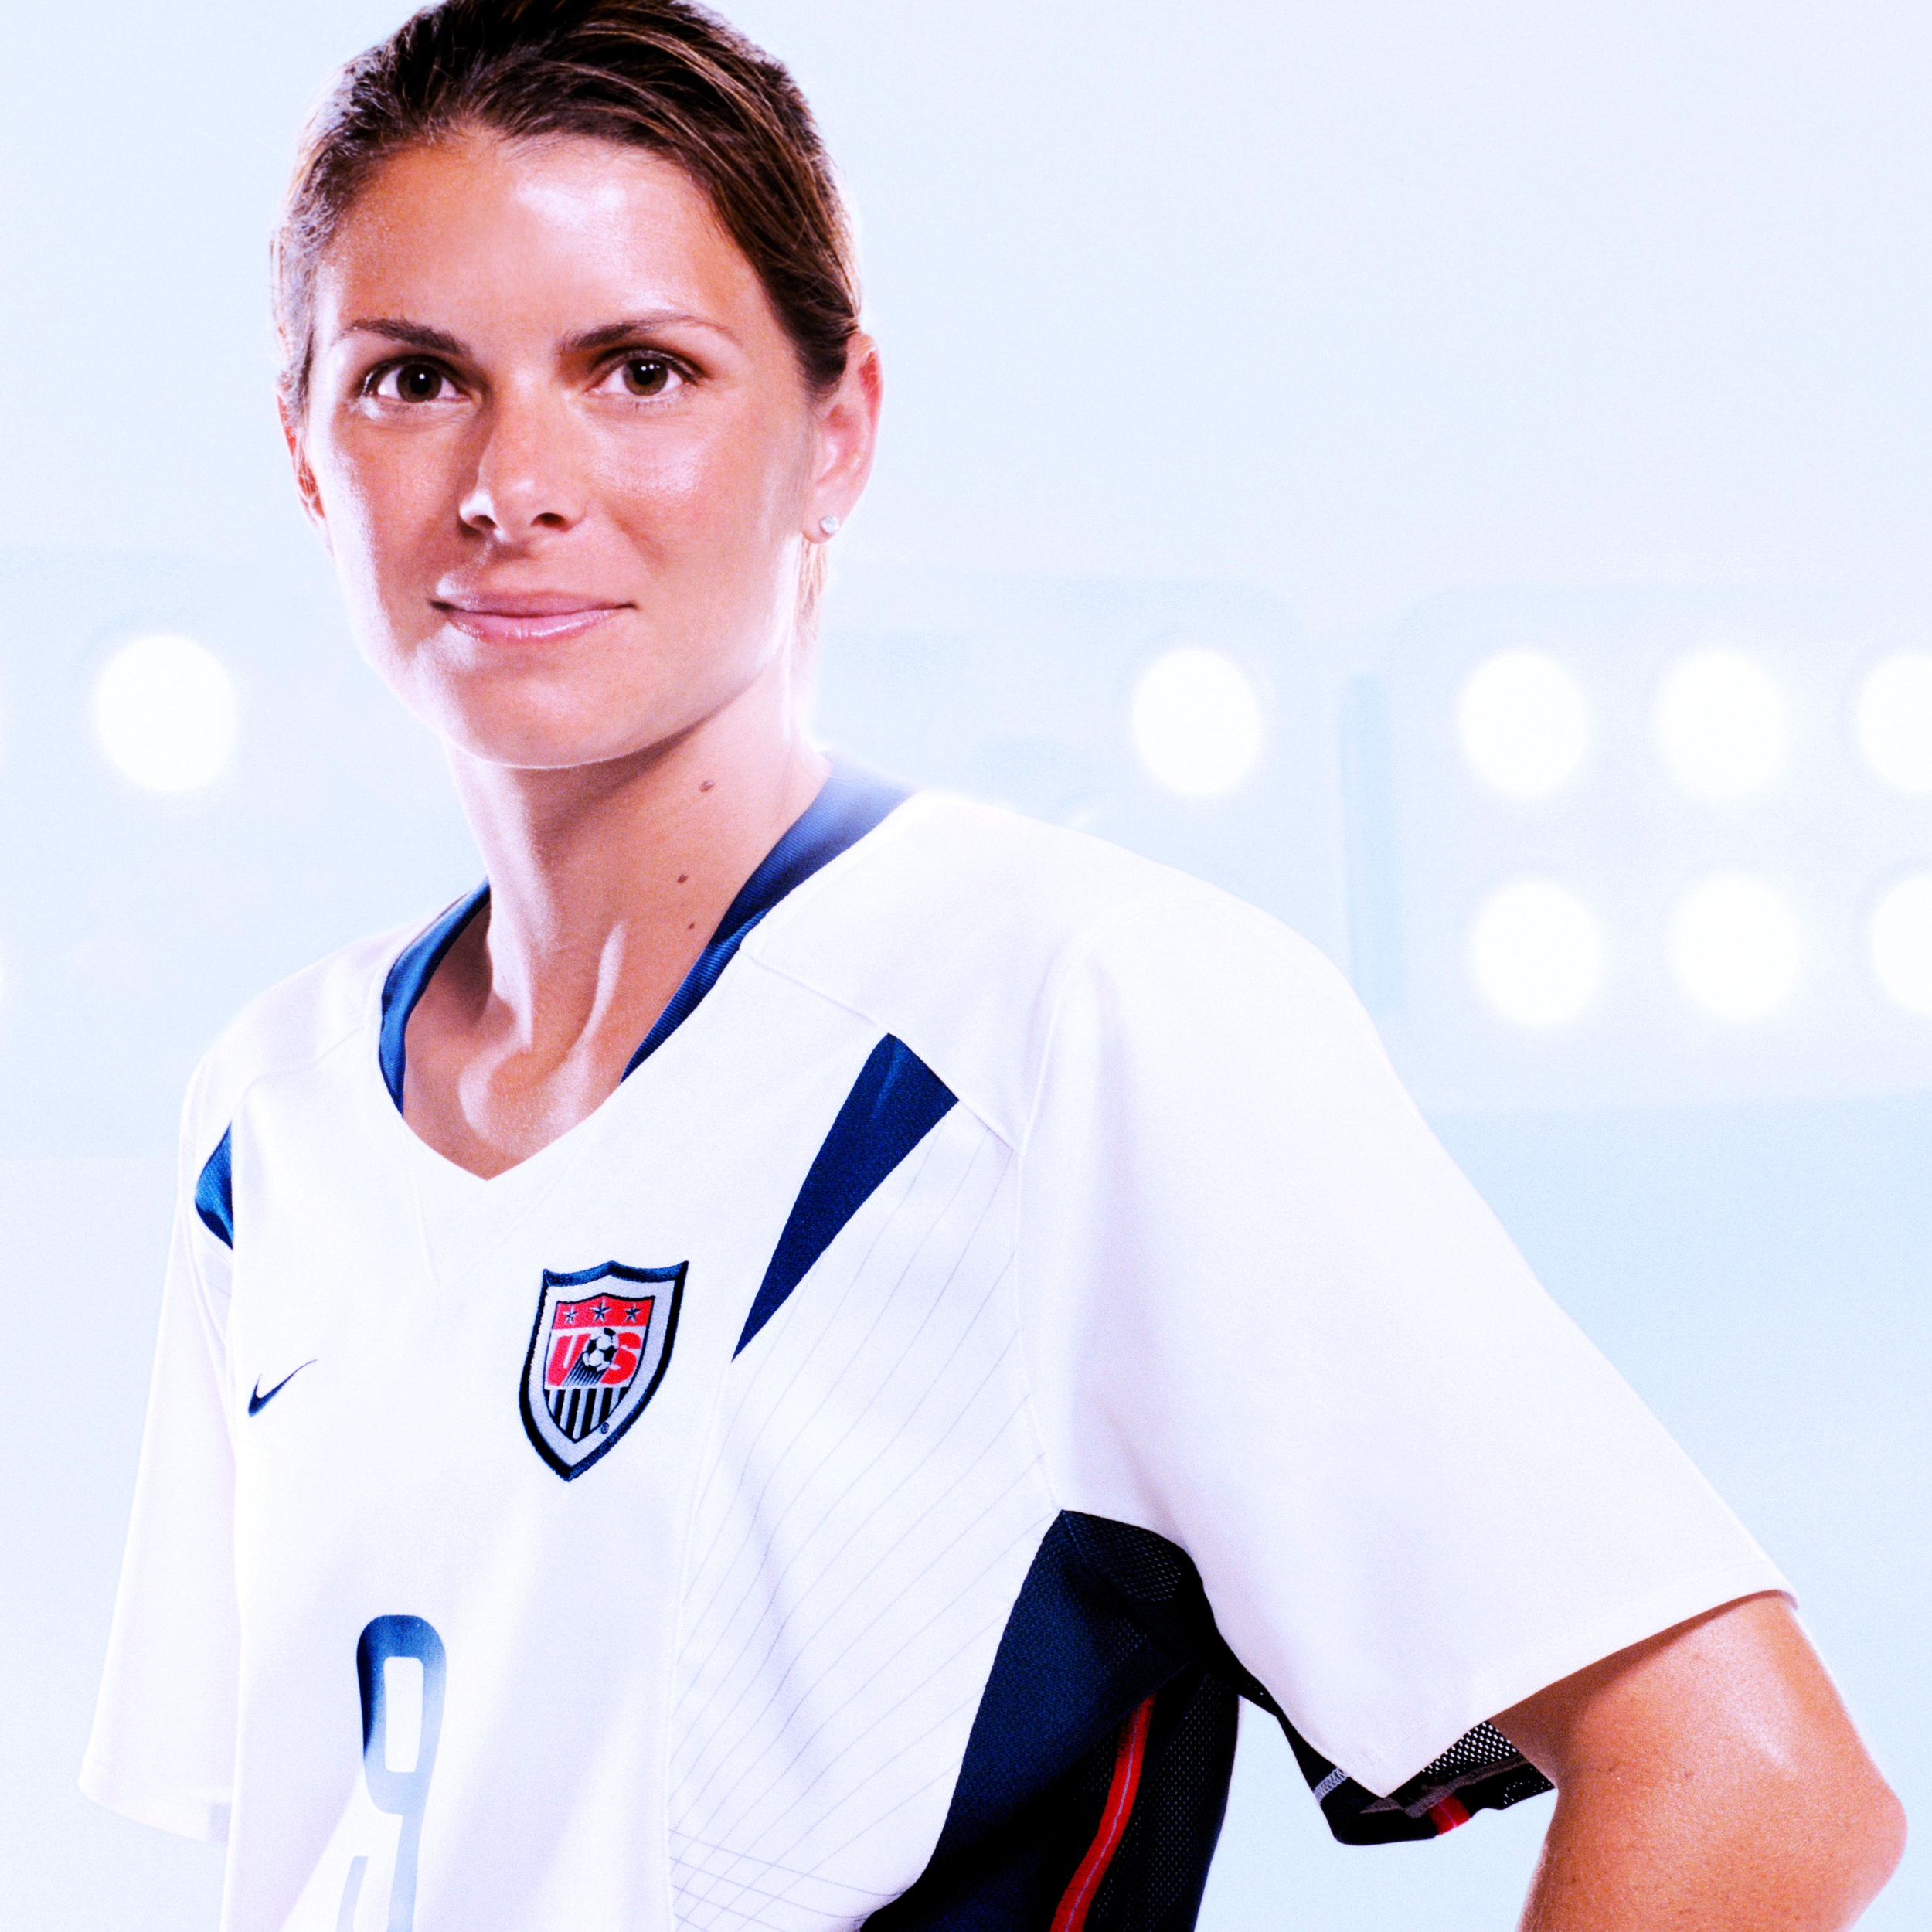 2006 - Mia Hamm - Mia Hamm is widely recognized as the world's best all-around women's soccer player, a pioneer in her sport and a role model for athletes and fans alike. In 1999, she founded the Mia Hamm Foundation to raise funds for those in need of bone marrow transplants.